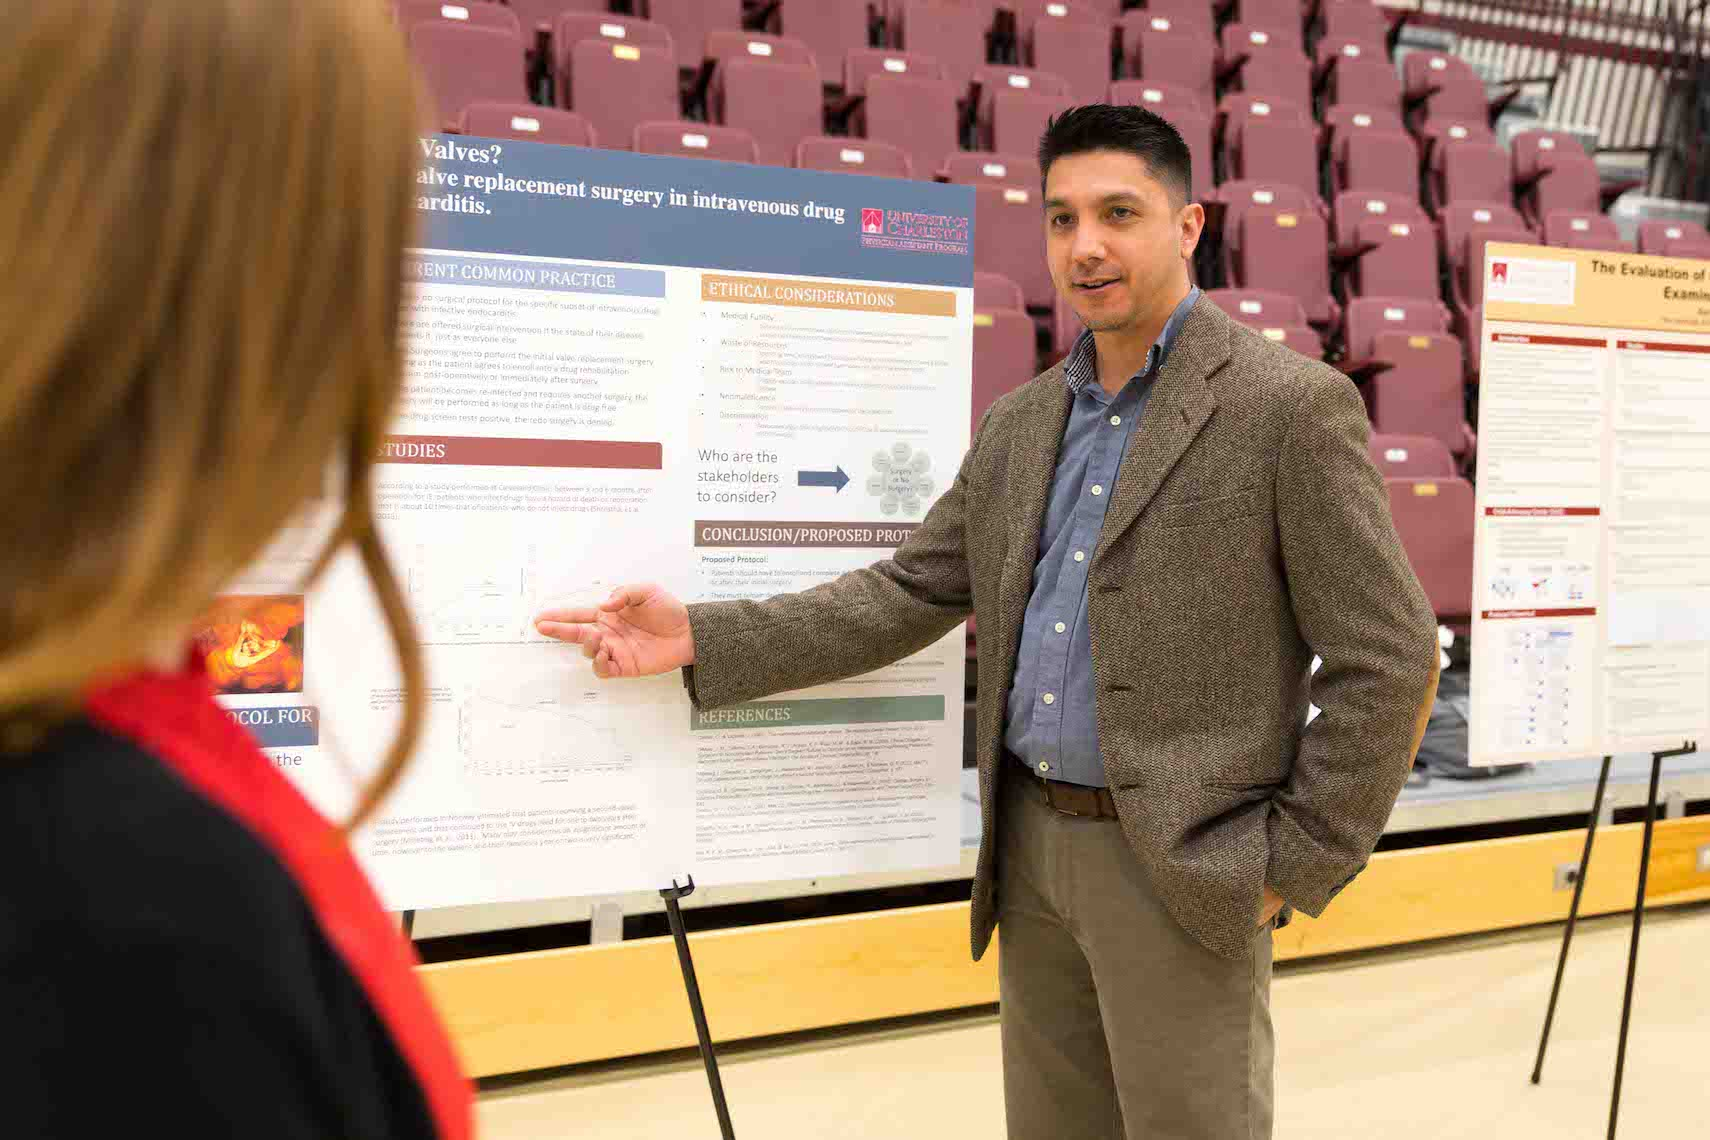 Male student in professional attire pointing to and discussing his research poster